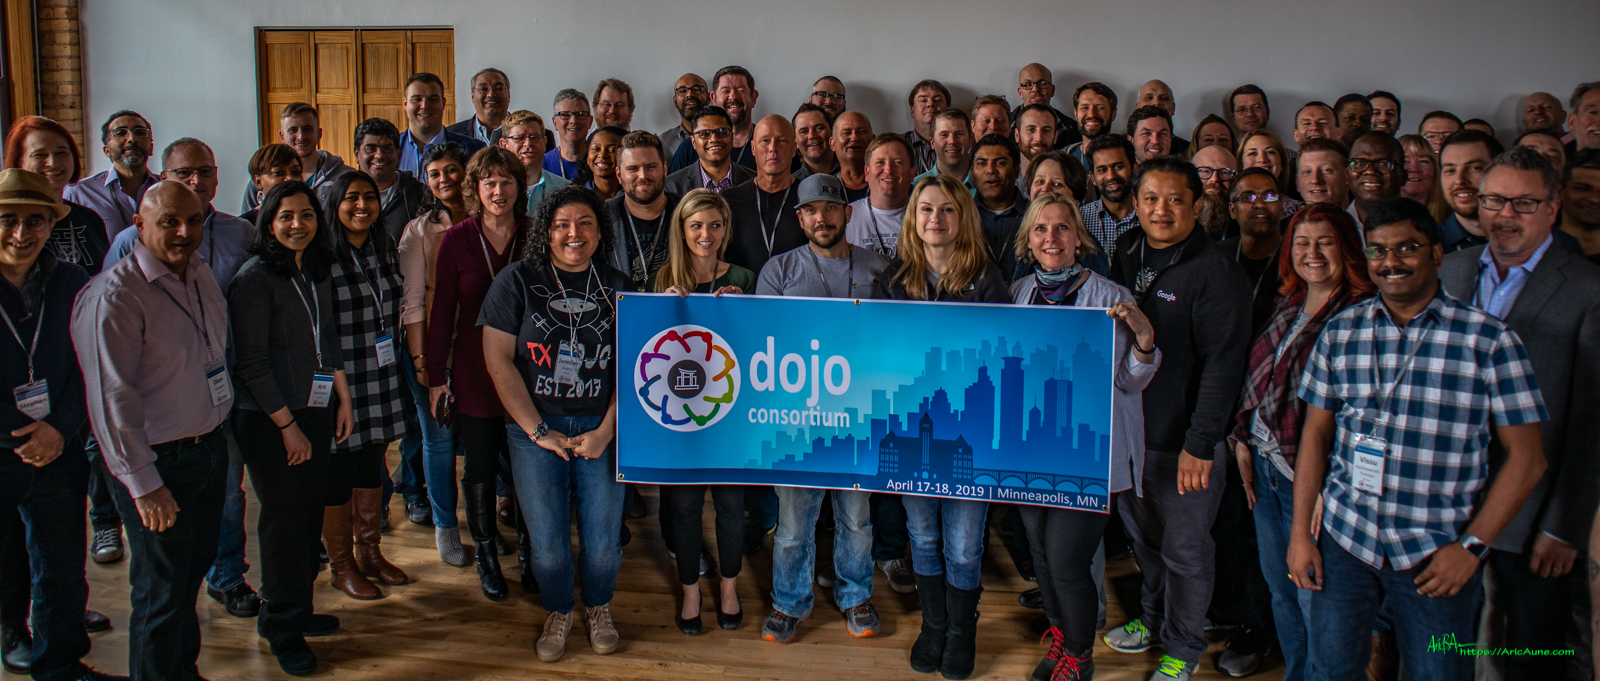 First ever Dojo Consortium Attendees